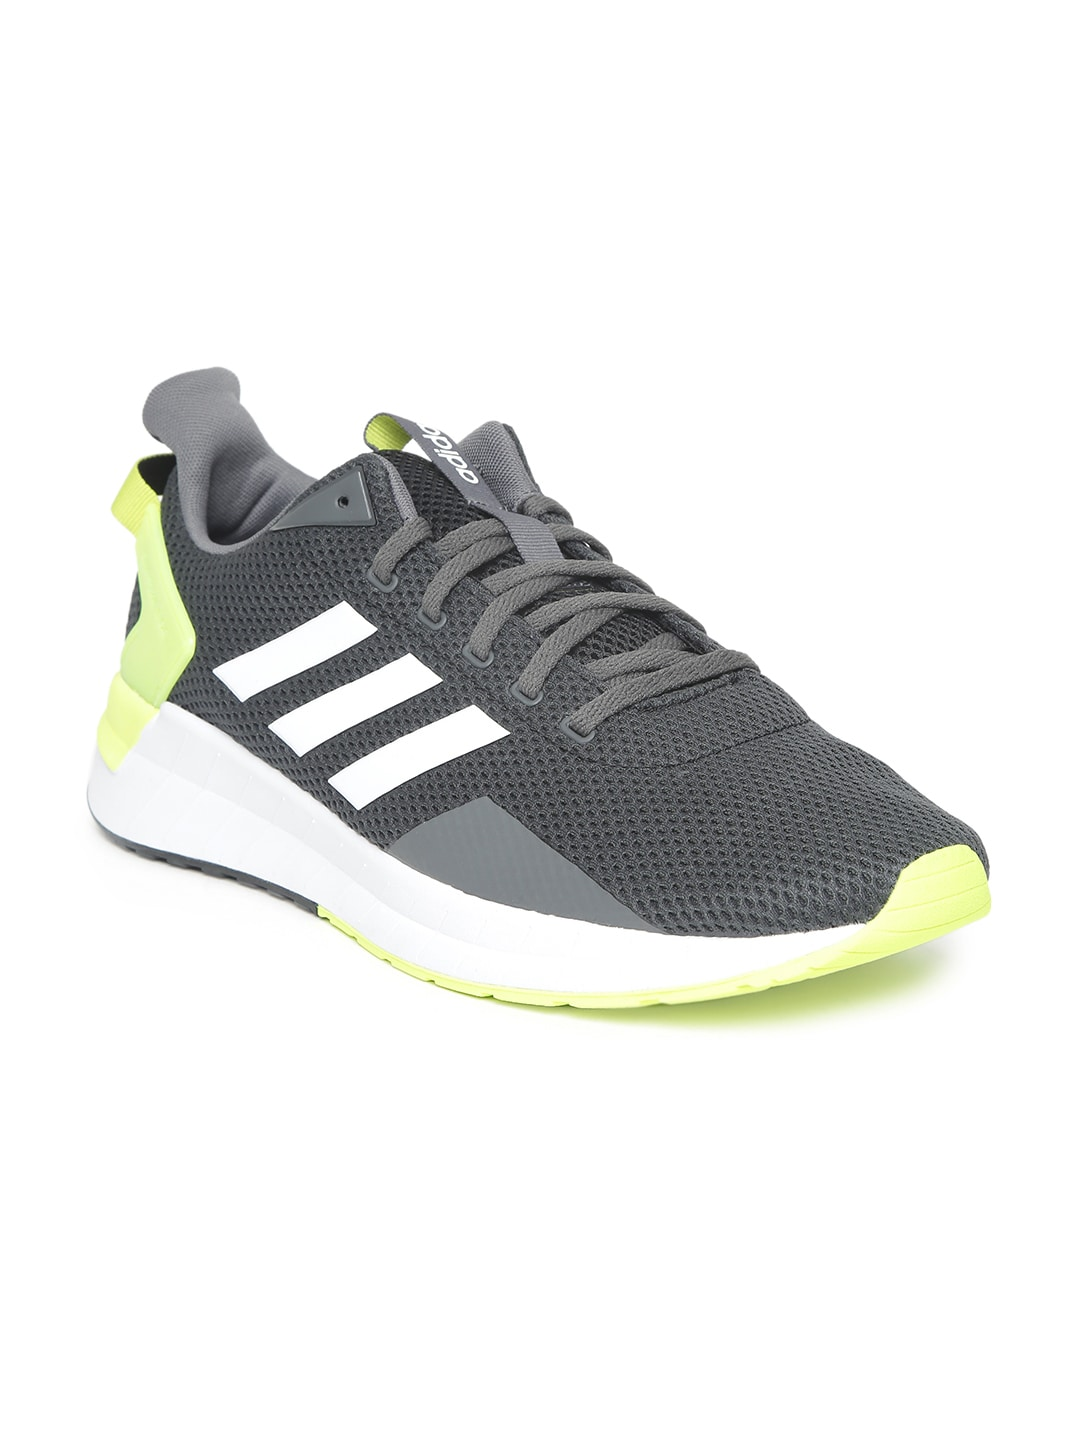 save off a2fe0 da234 Adidas Basketball Shoes  Buy Adidas Basketball Shoes Online in India at  Best Price